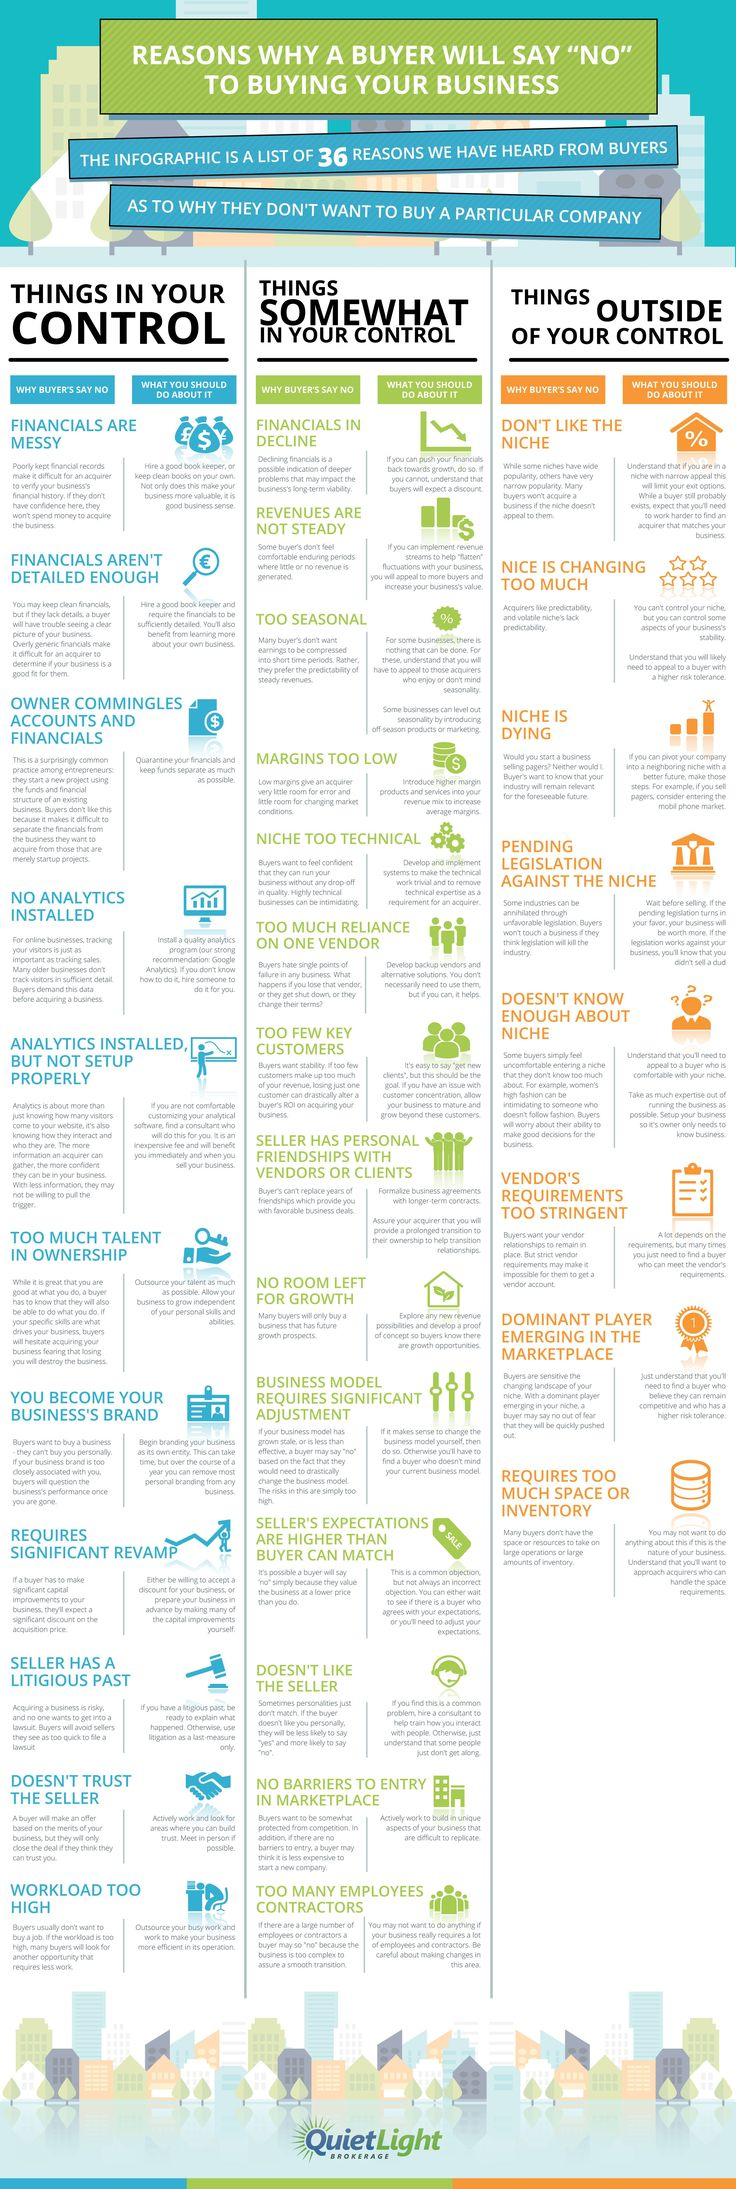 """Reasons Why a Buyer Will Say """"No"""" to Buying your Business #infographic #Business"""